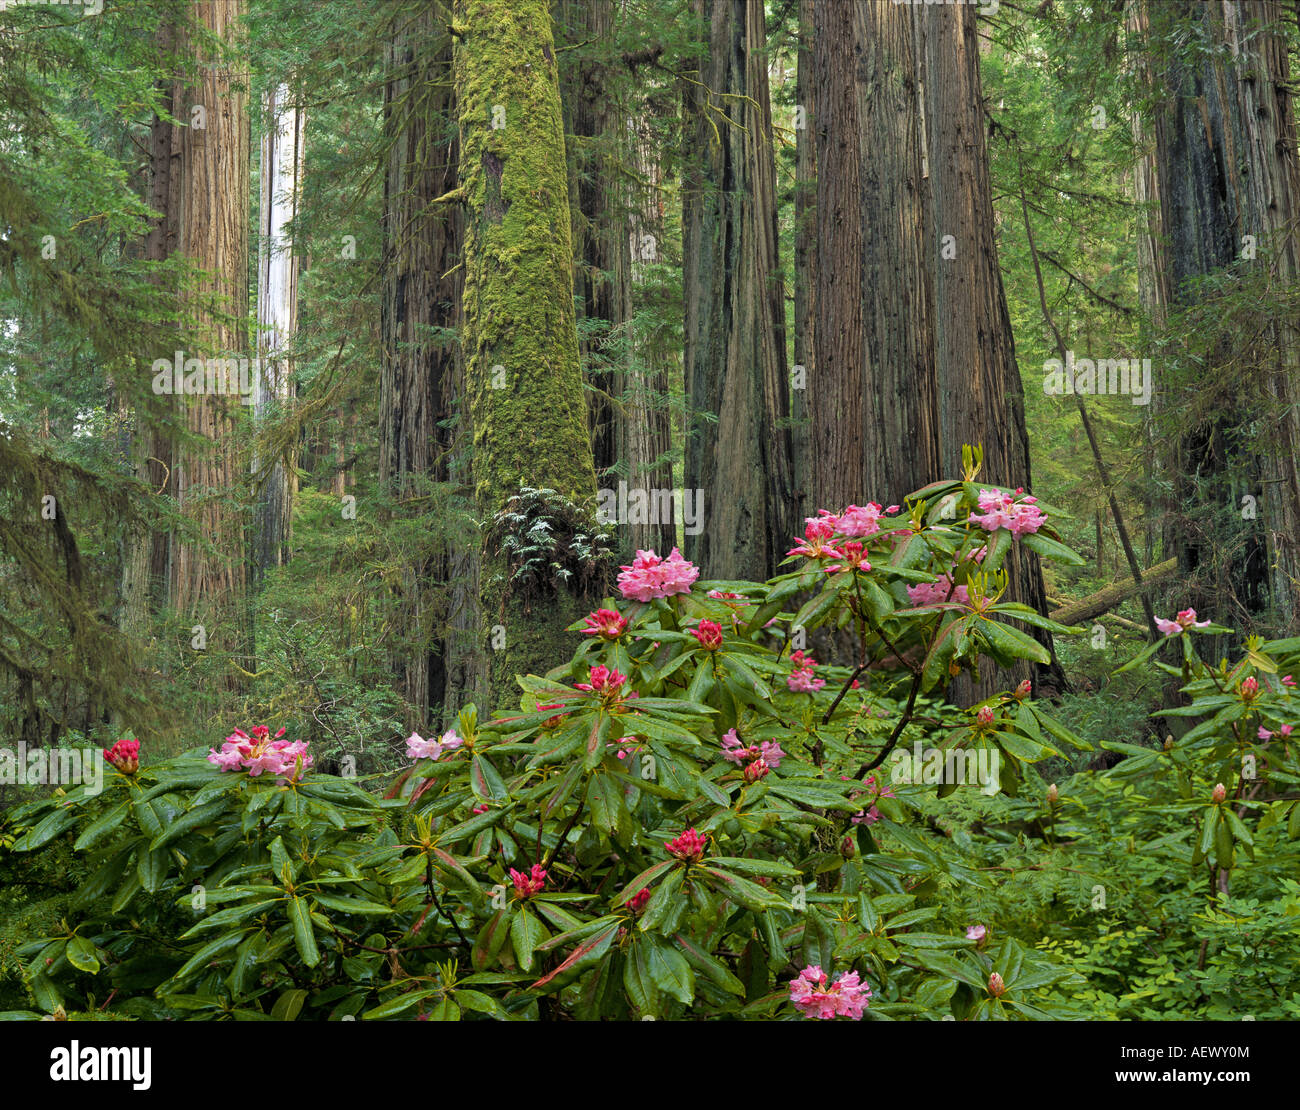 Rhododendrons grow among the giant redwood trees in Redwoods National Park in northern California - Stock Image